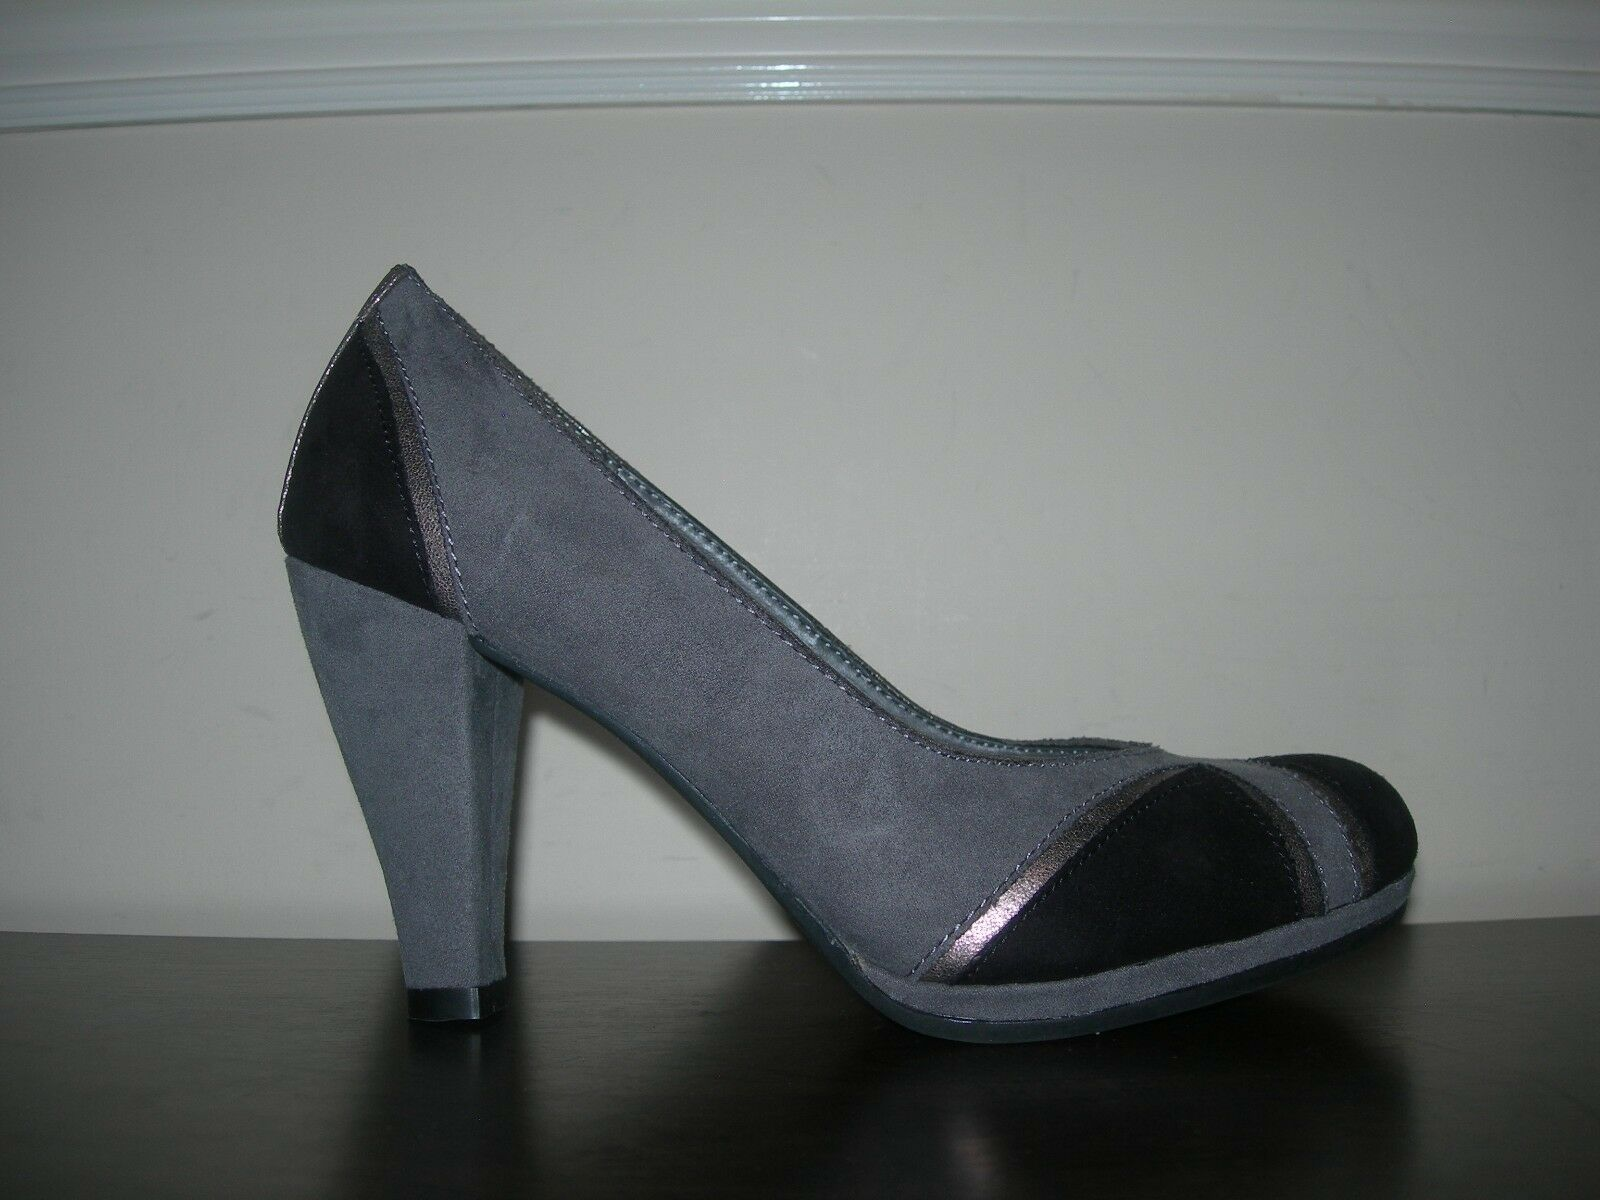 GRACELAND damen COURT schuhe schuhe schuhe HEELS grau schwarz METALLIC SYNTHETIC EU 37   UK 4 dc9c43